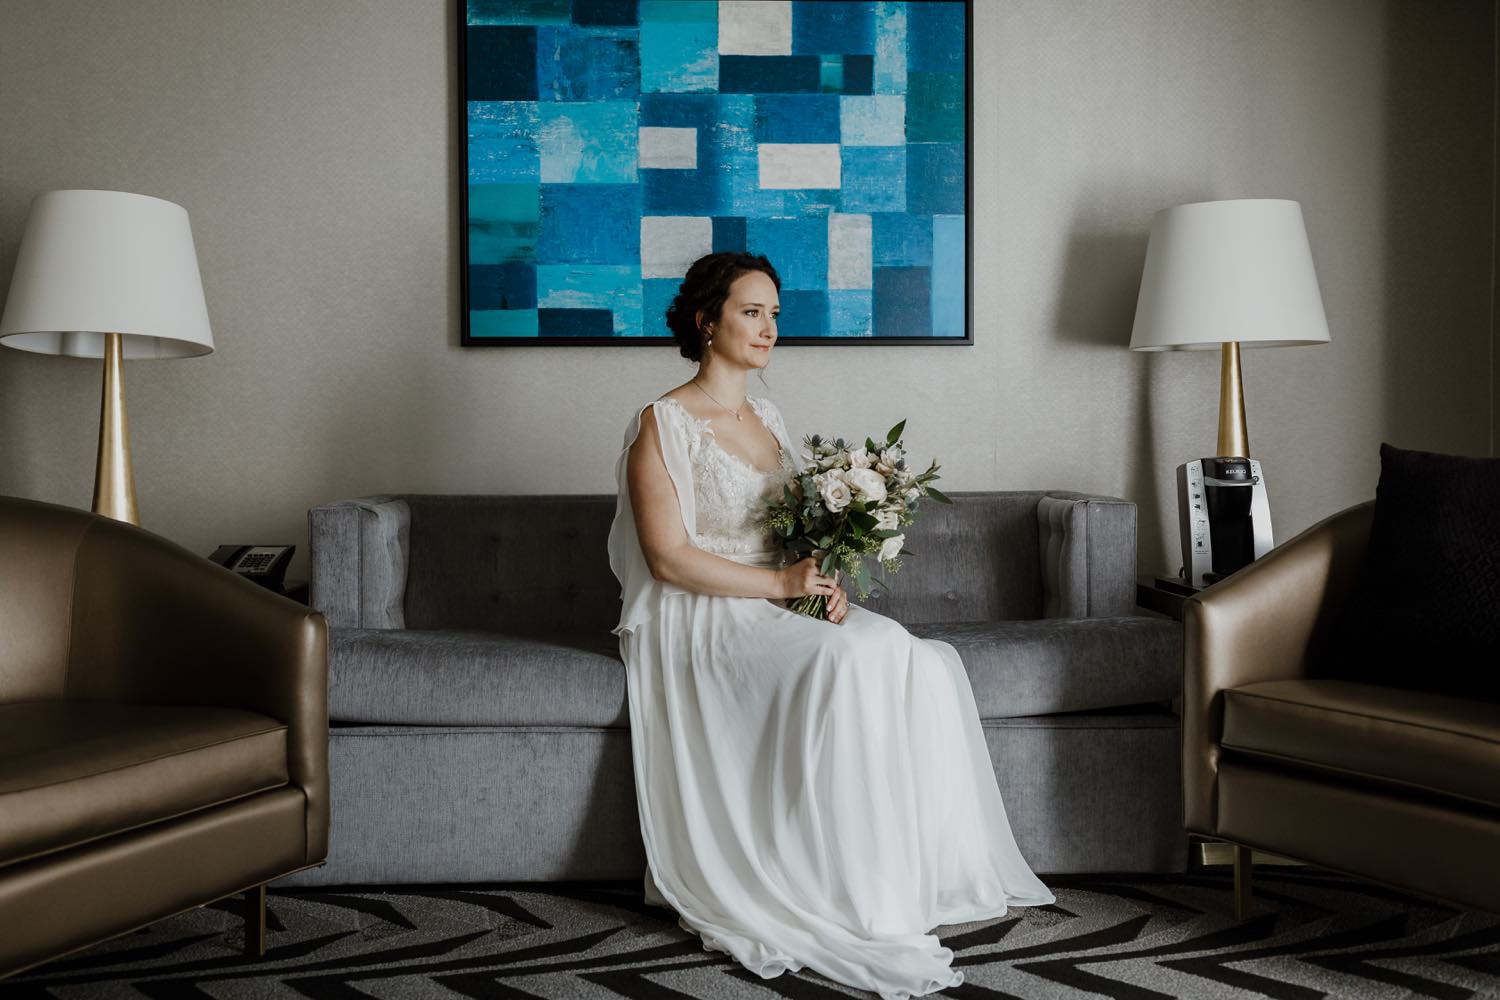 Portait of the bride sitting on the couch at the allegro hotel in Chicago